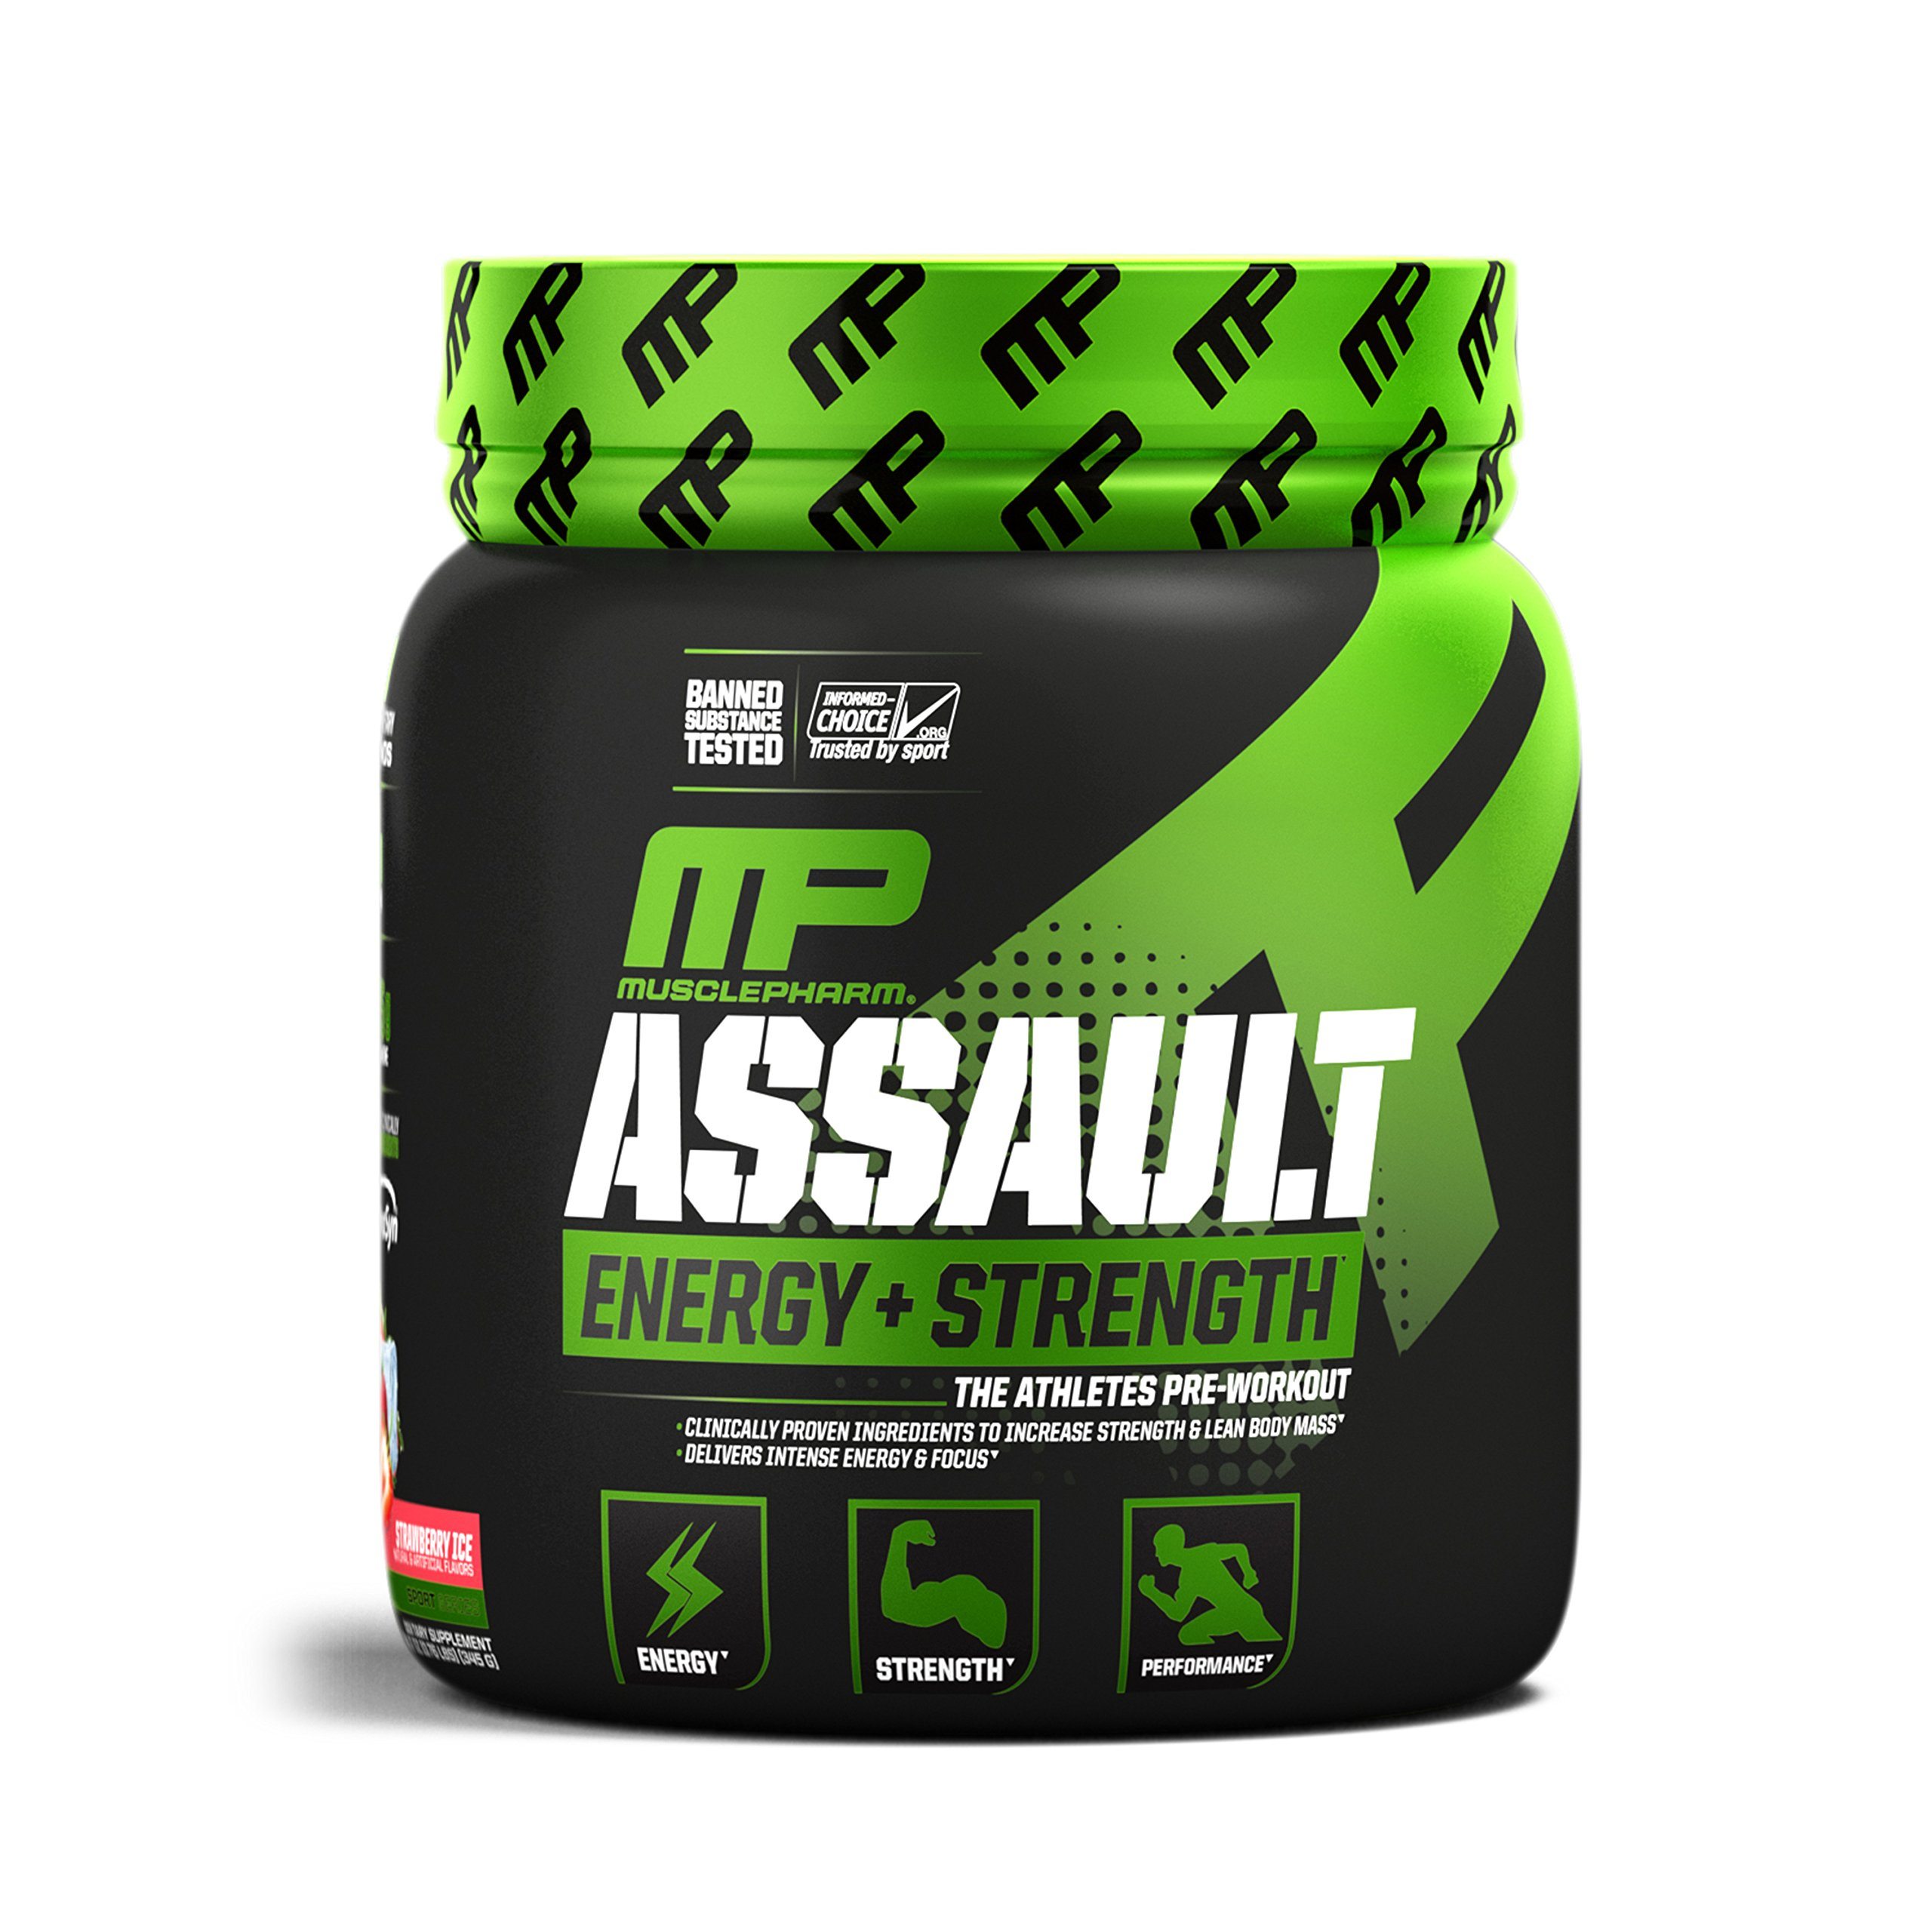 MusclePharm Assault Sport Pre-Workout Powder with High Dose Energy, Focus, Strength and Endurance - Creatine, Taurine and Caffeine, Strawberry Ice, 30 Servings